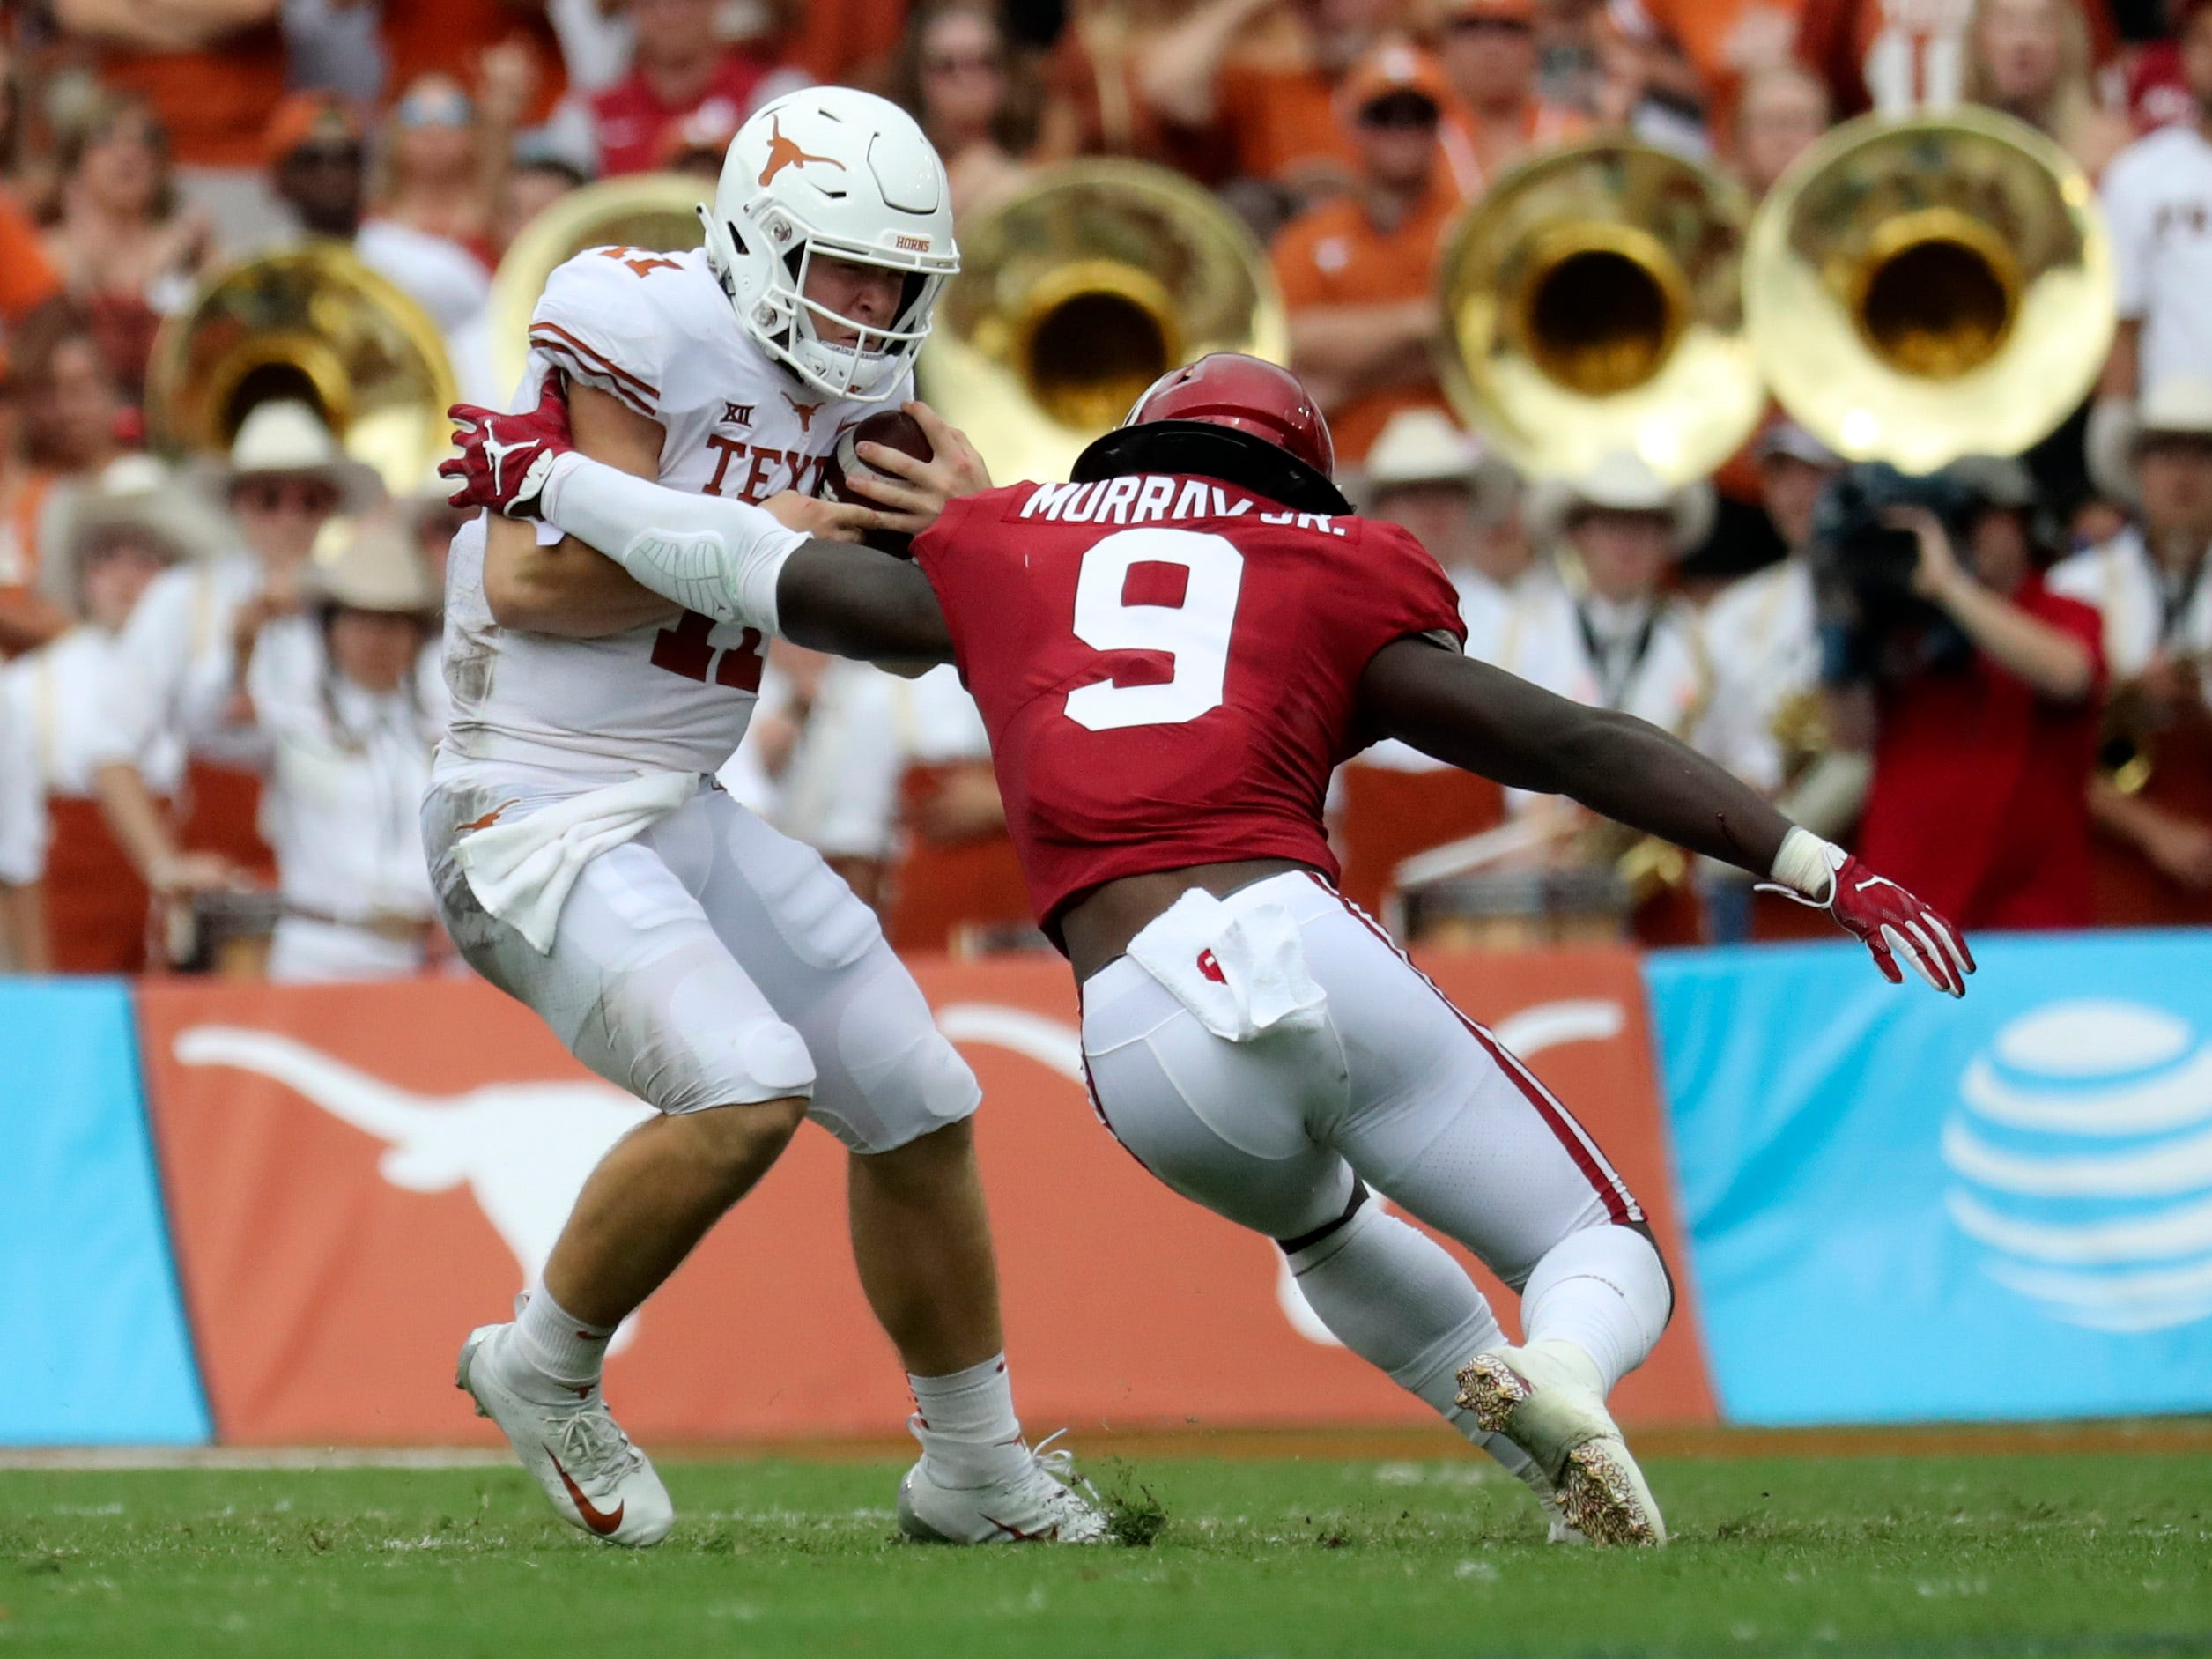 Oklahoma Sooners linebacker Kenneth Murray chases Texas Longhorns quarterback Sam Ehlinger during the first half at the Cotton Bowl.